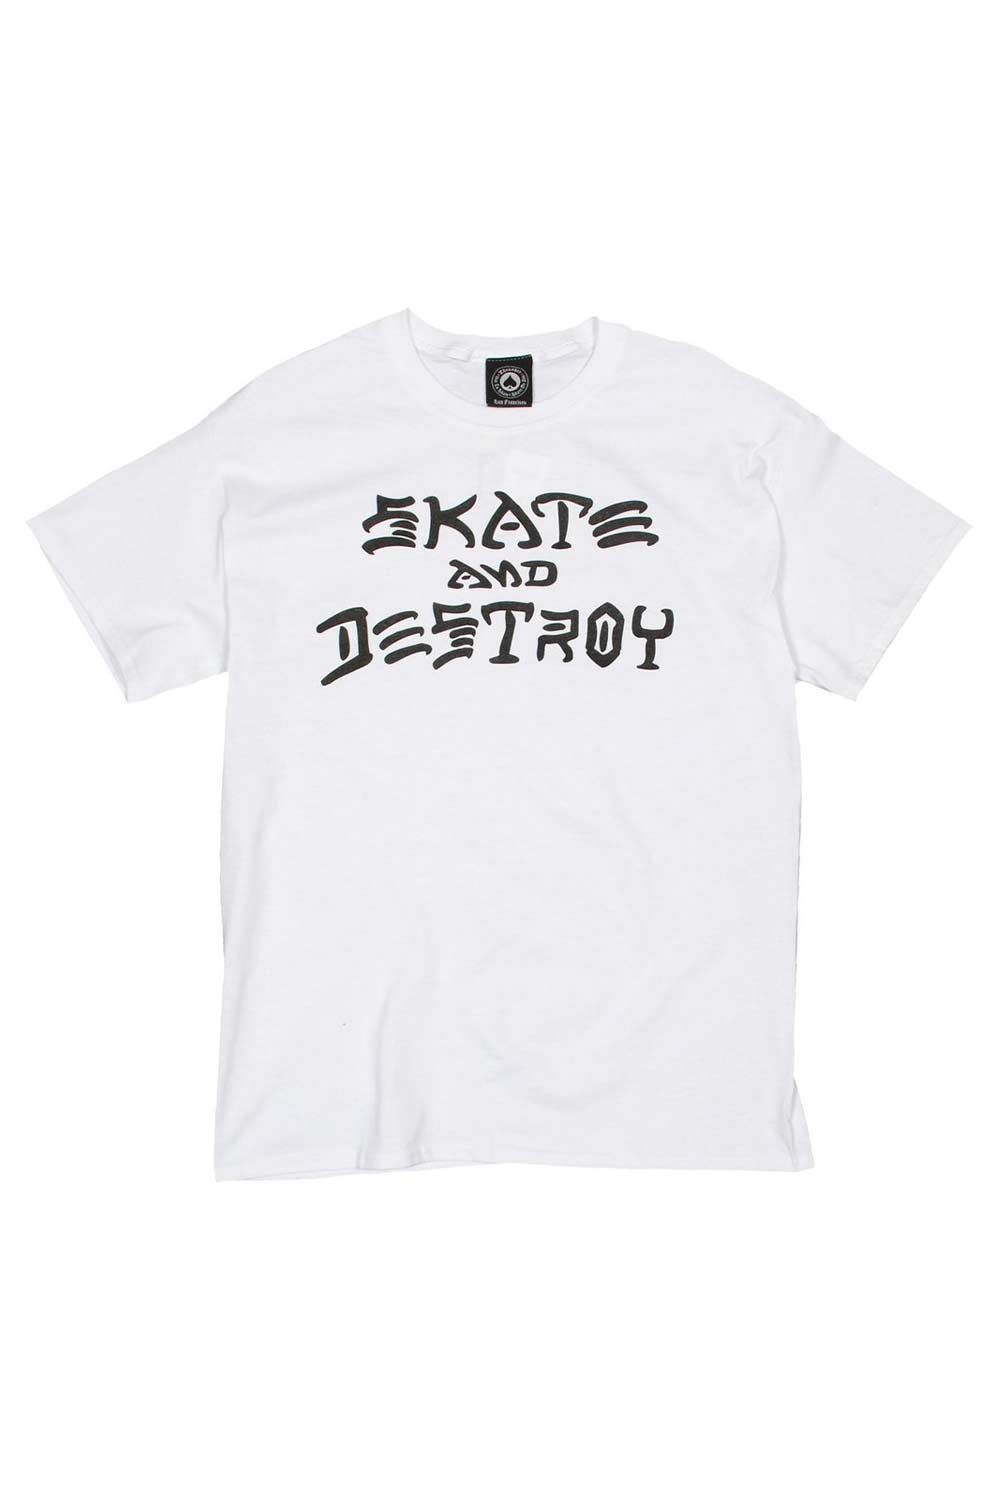 Buy Thrasher Skate And Destroy Tee | Buy Thrasher Clothing Online